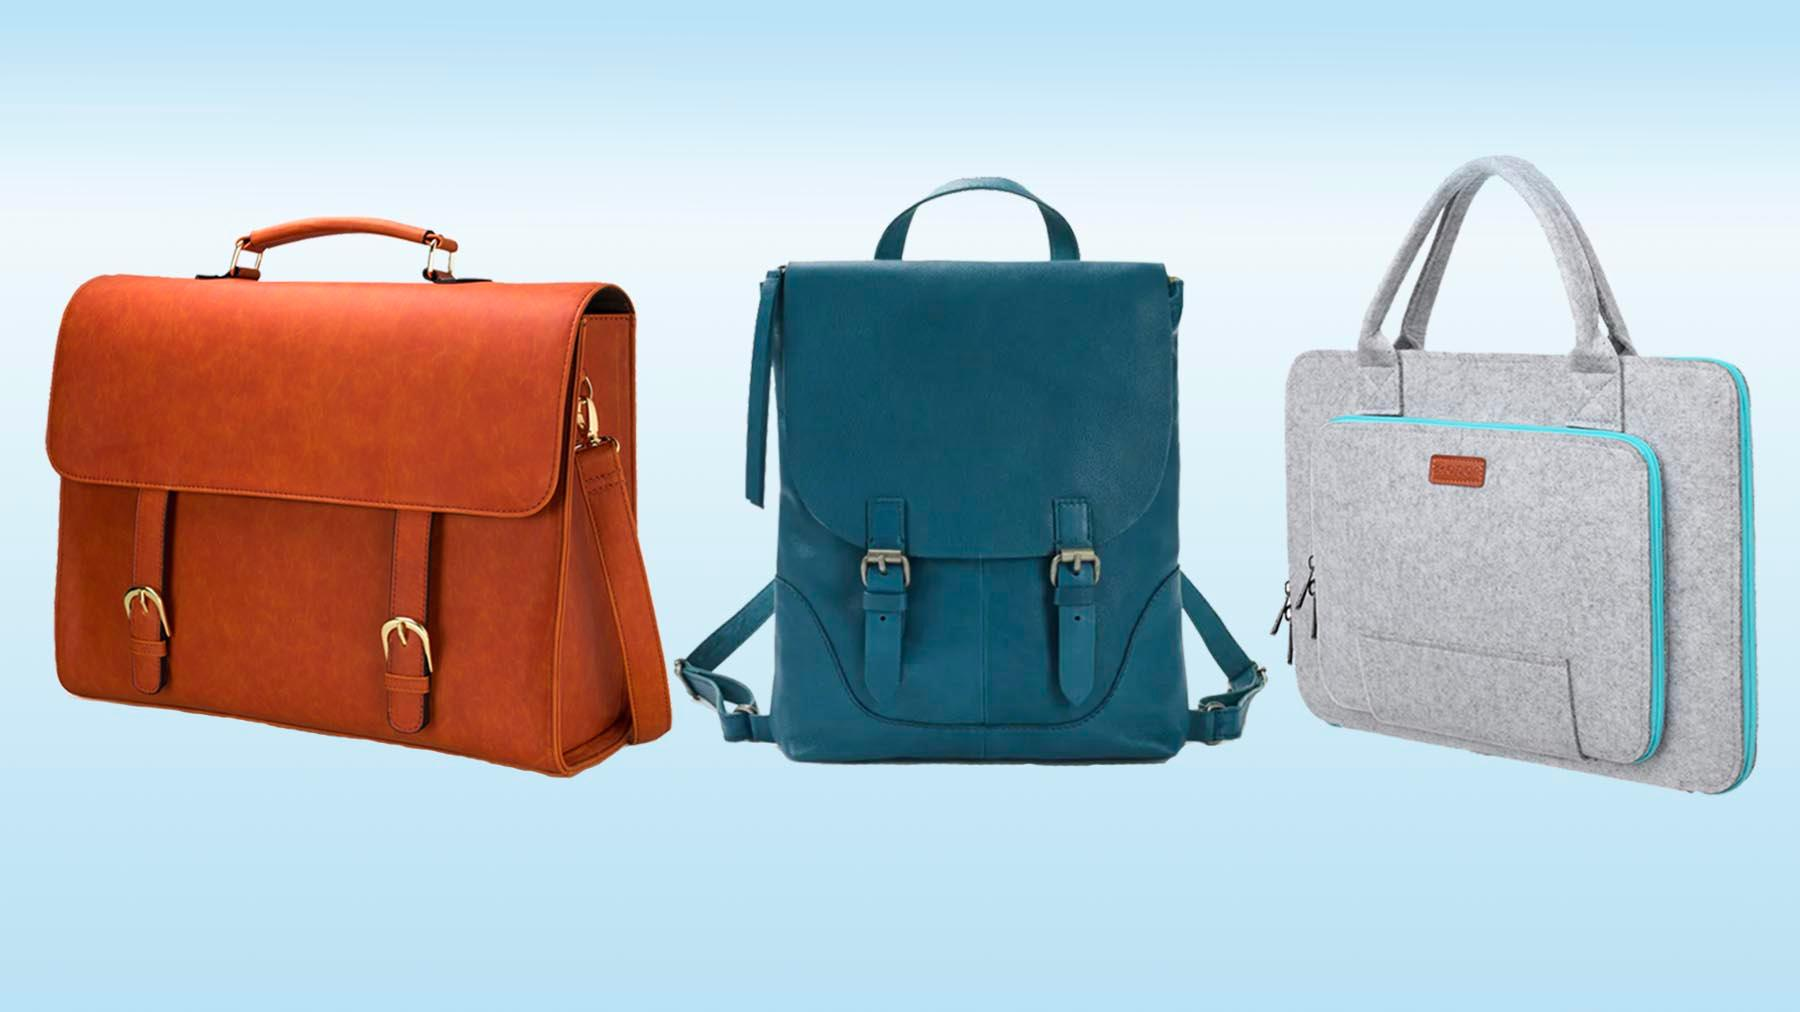 Available Various Colours Women/'s Leather Purse in Horizontal Format